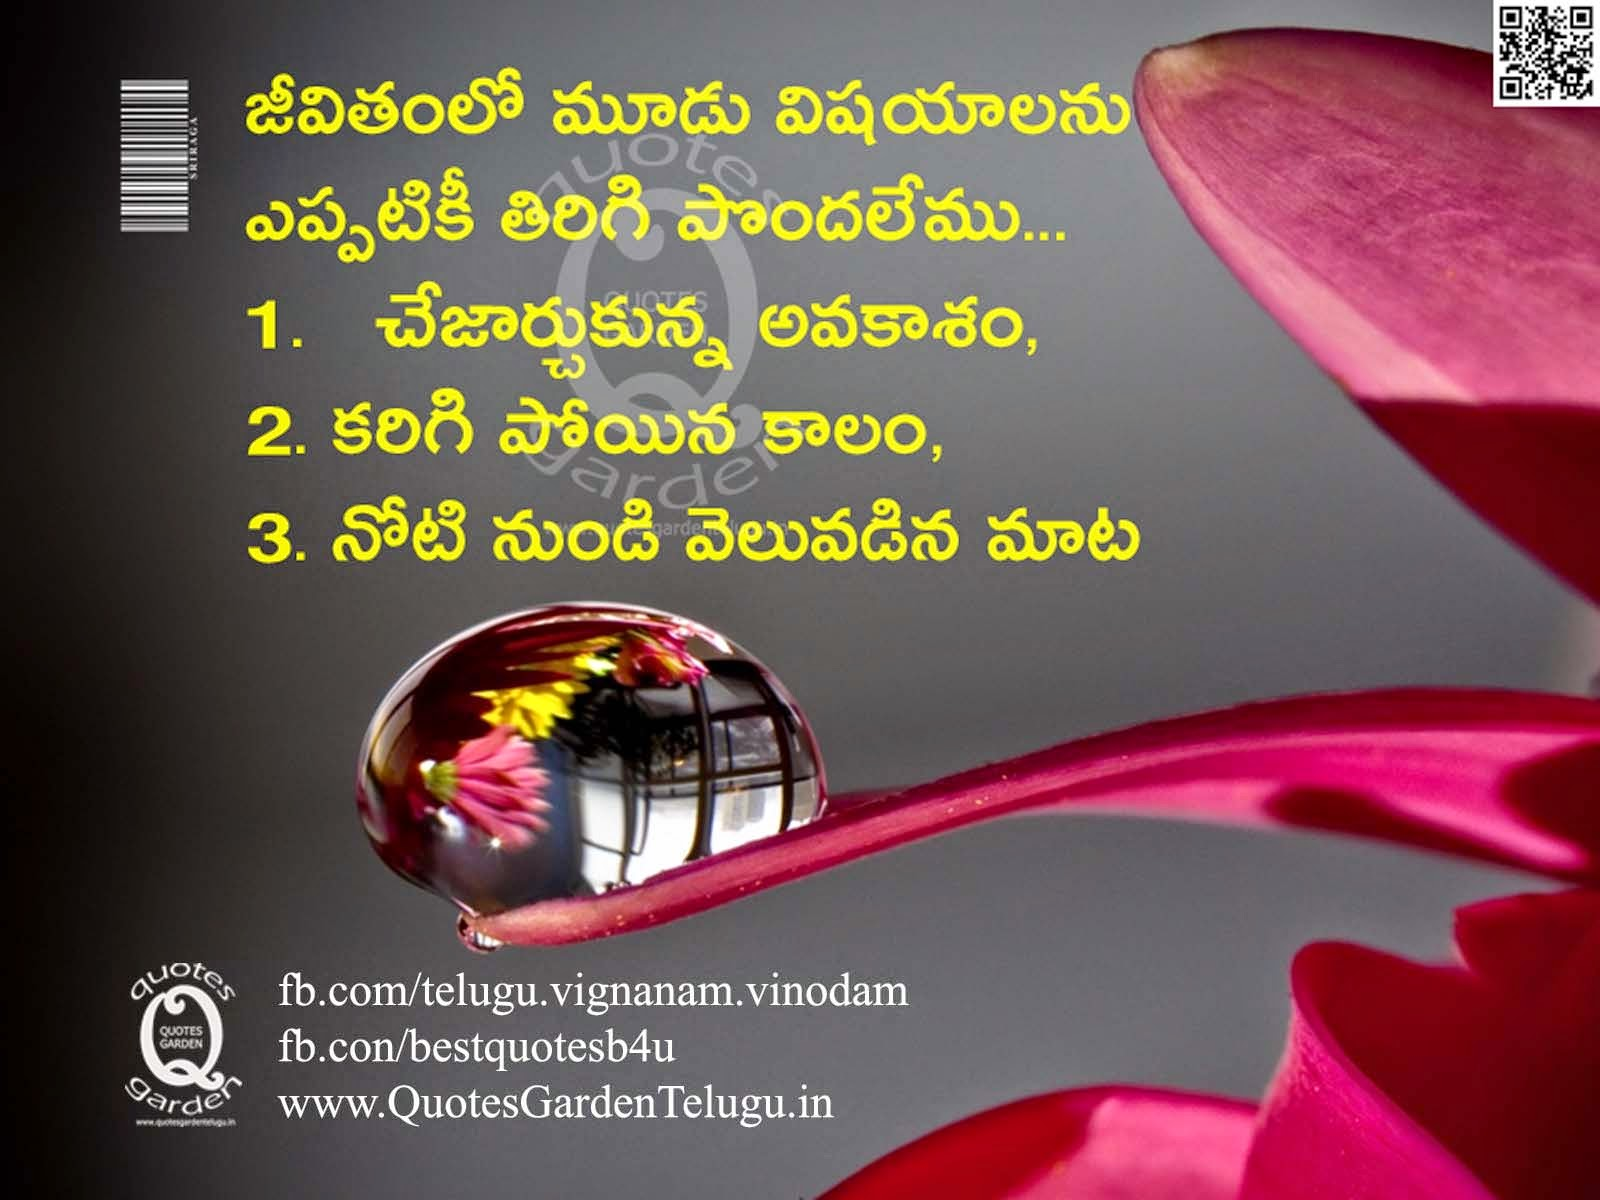 Telugu Best Inspirational life Quotes with best images and cool wall papers